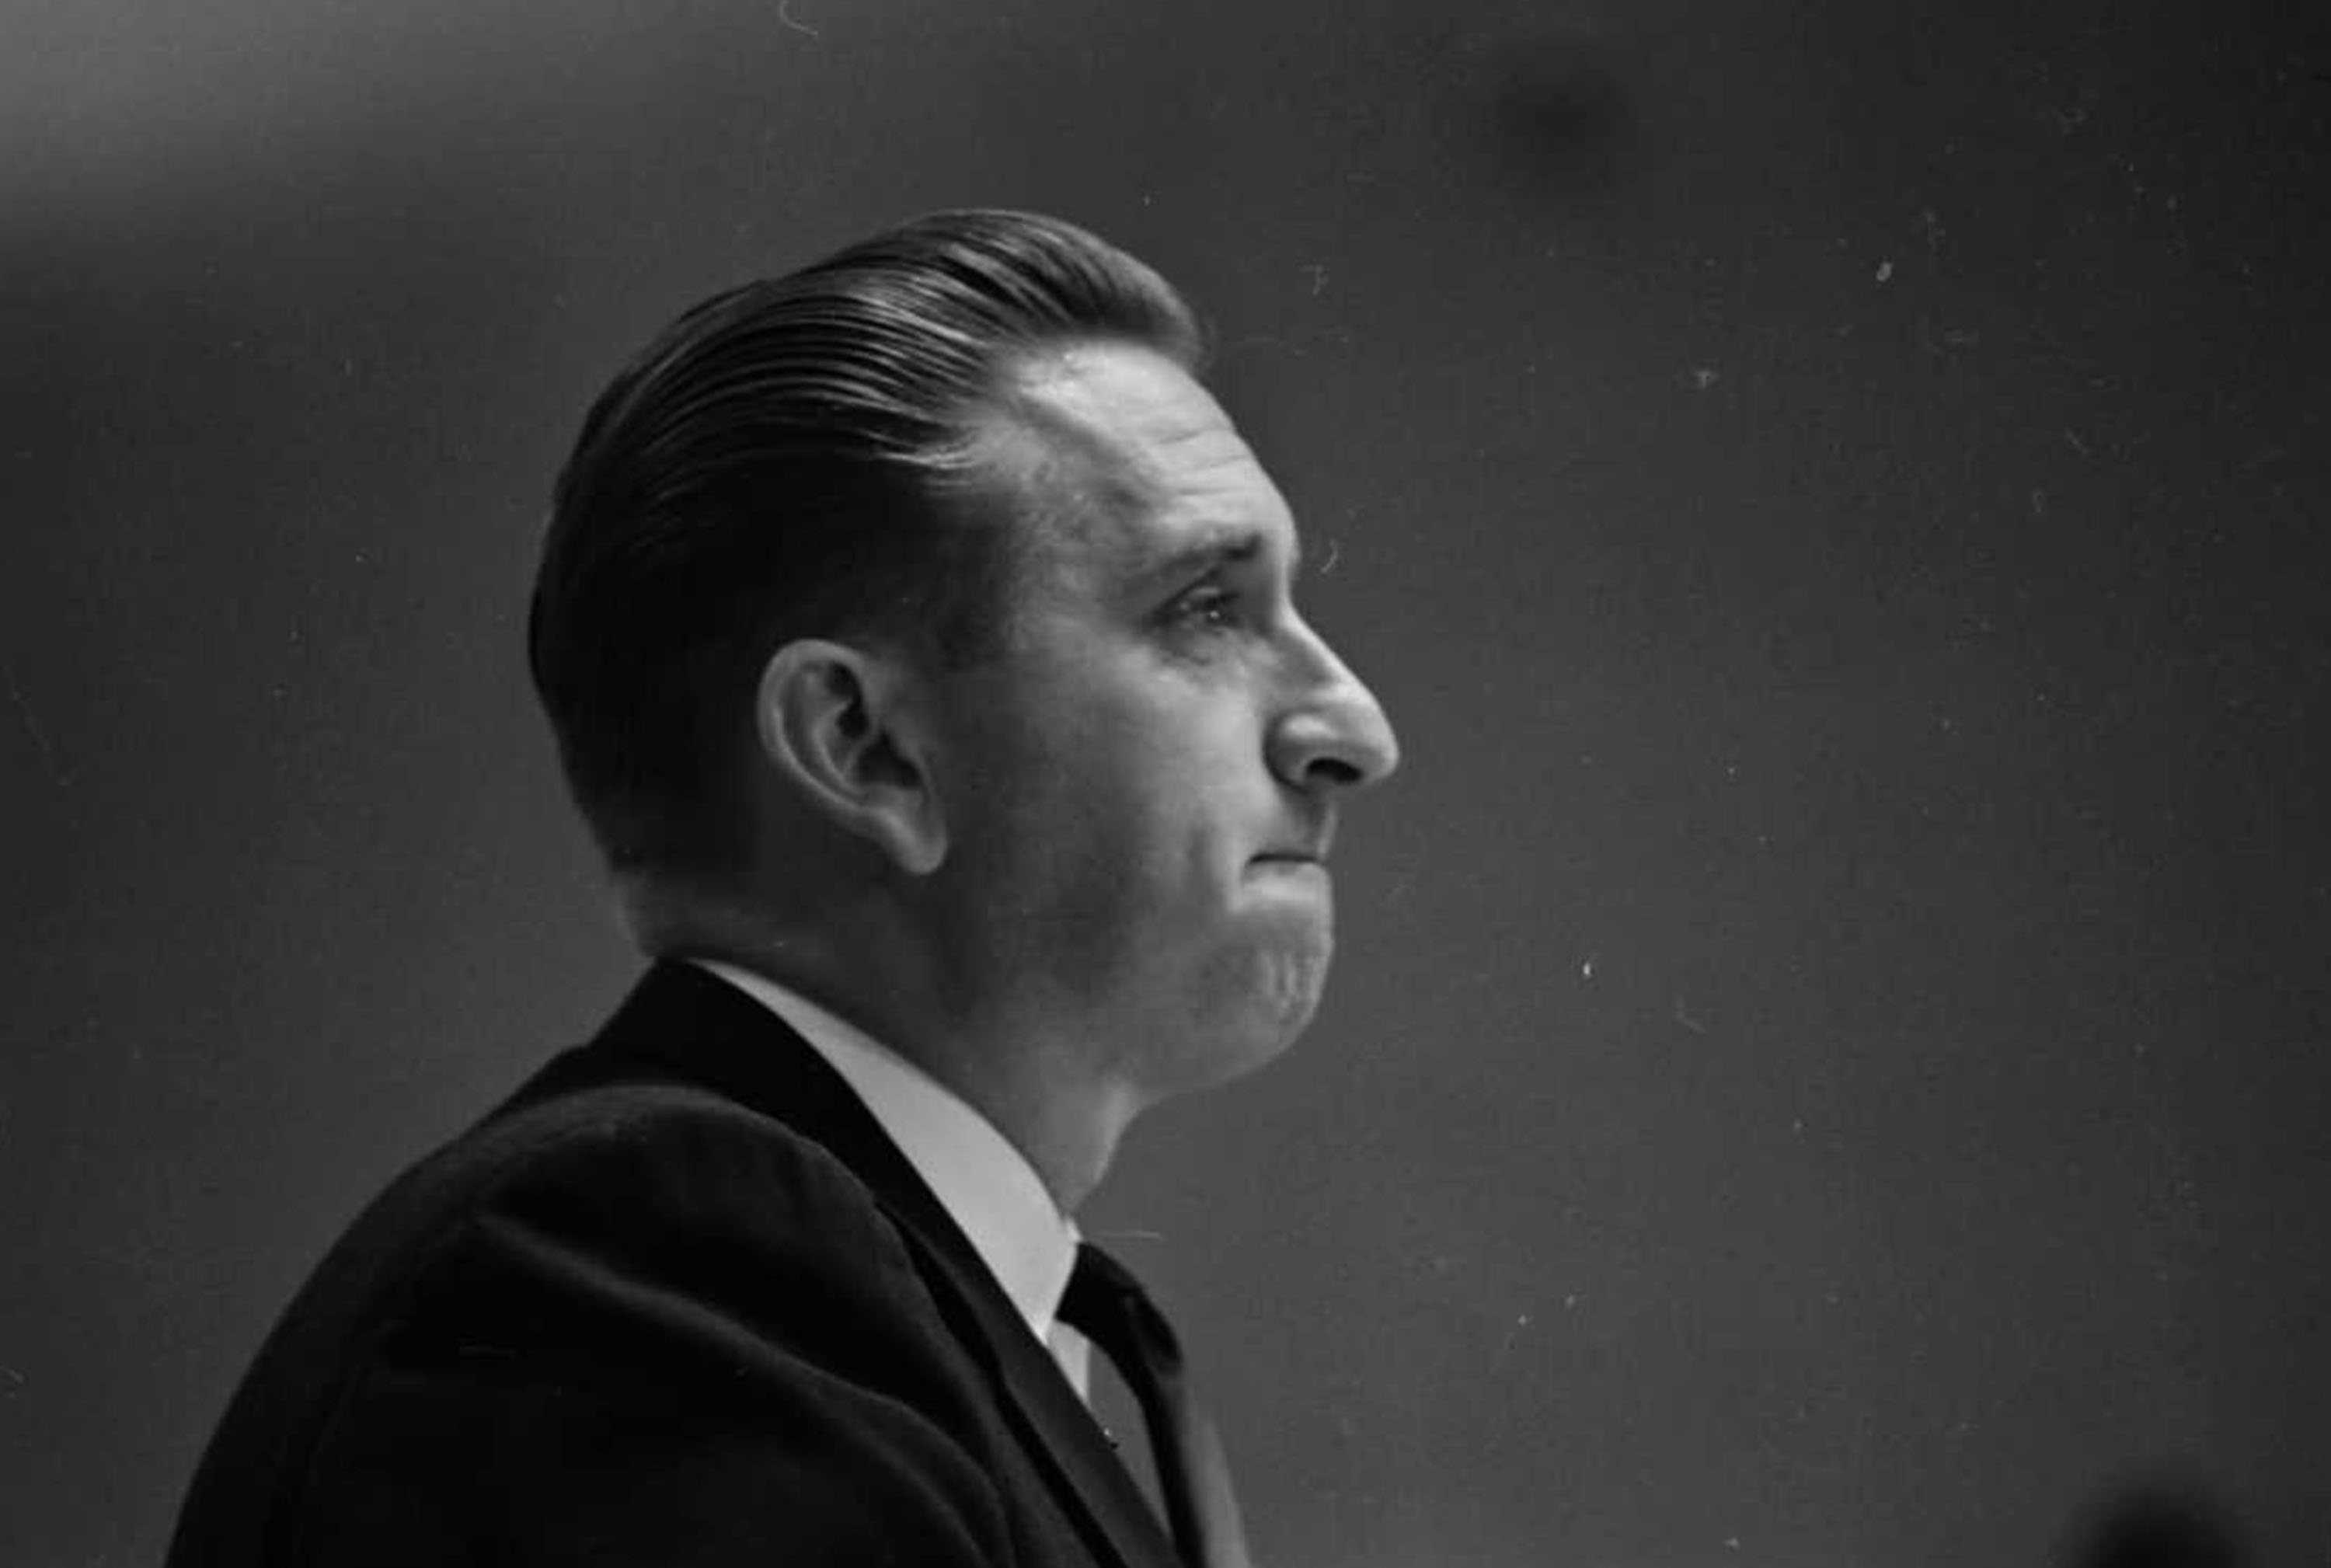 (photo courtesy Utah State Historical Society) Thomas S. Monson gives an emotional talk in the Semiannual General Conference after being sustained a member of the Quorum of the Twelve Apostles on Oct. 10, 1963.